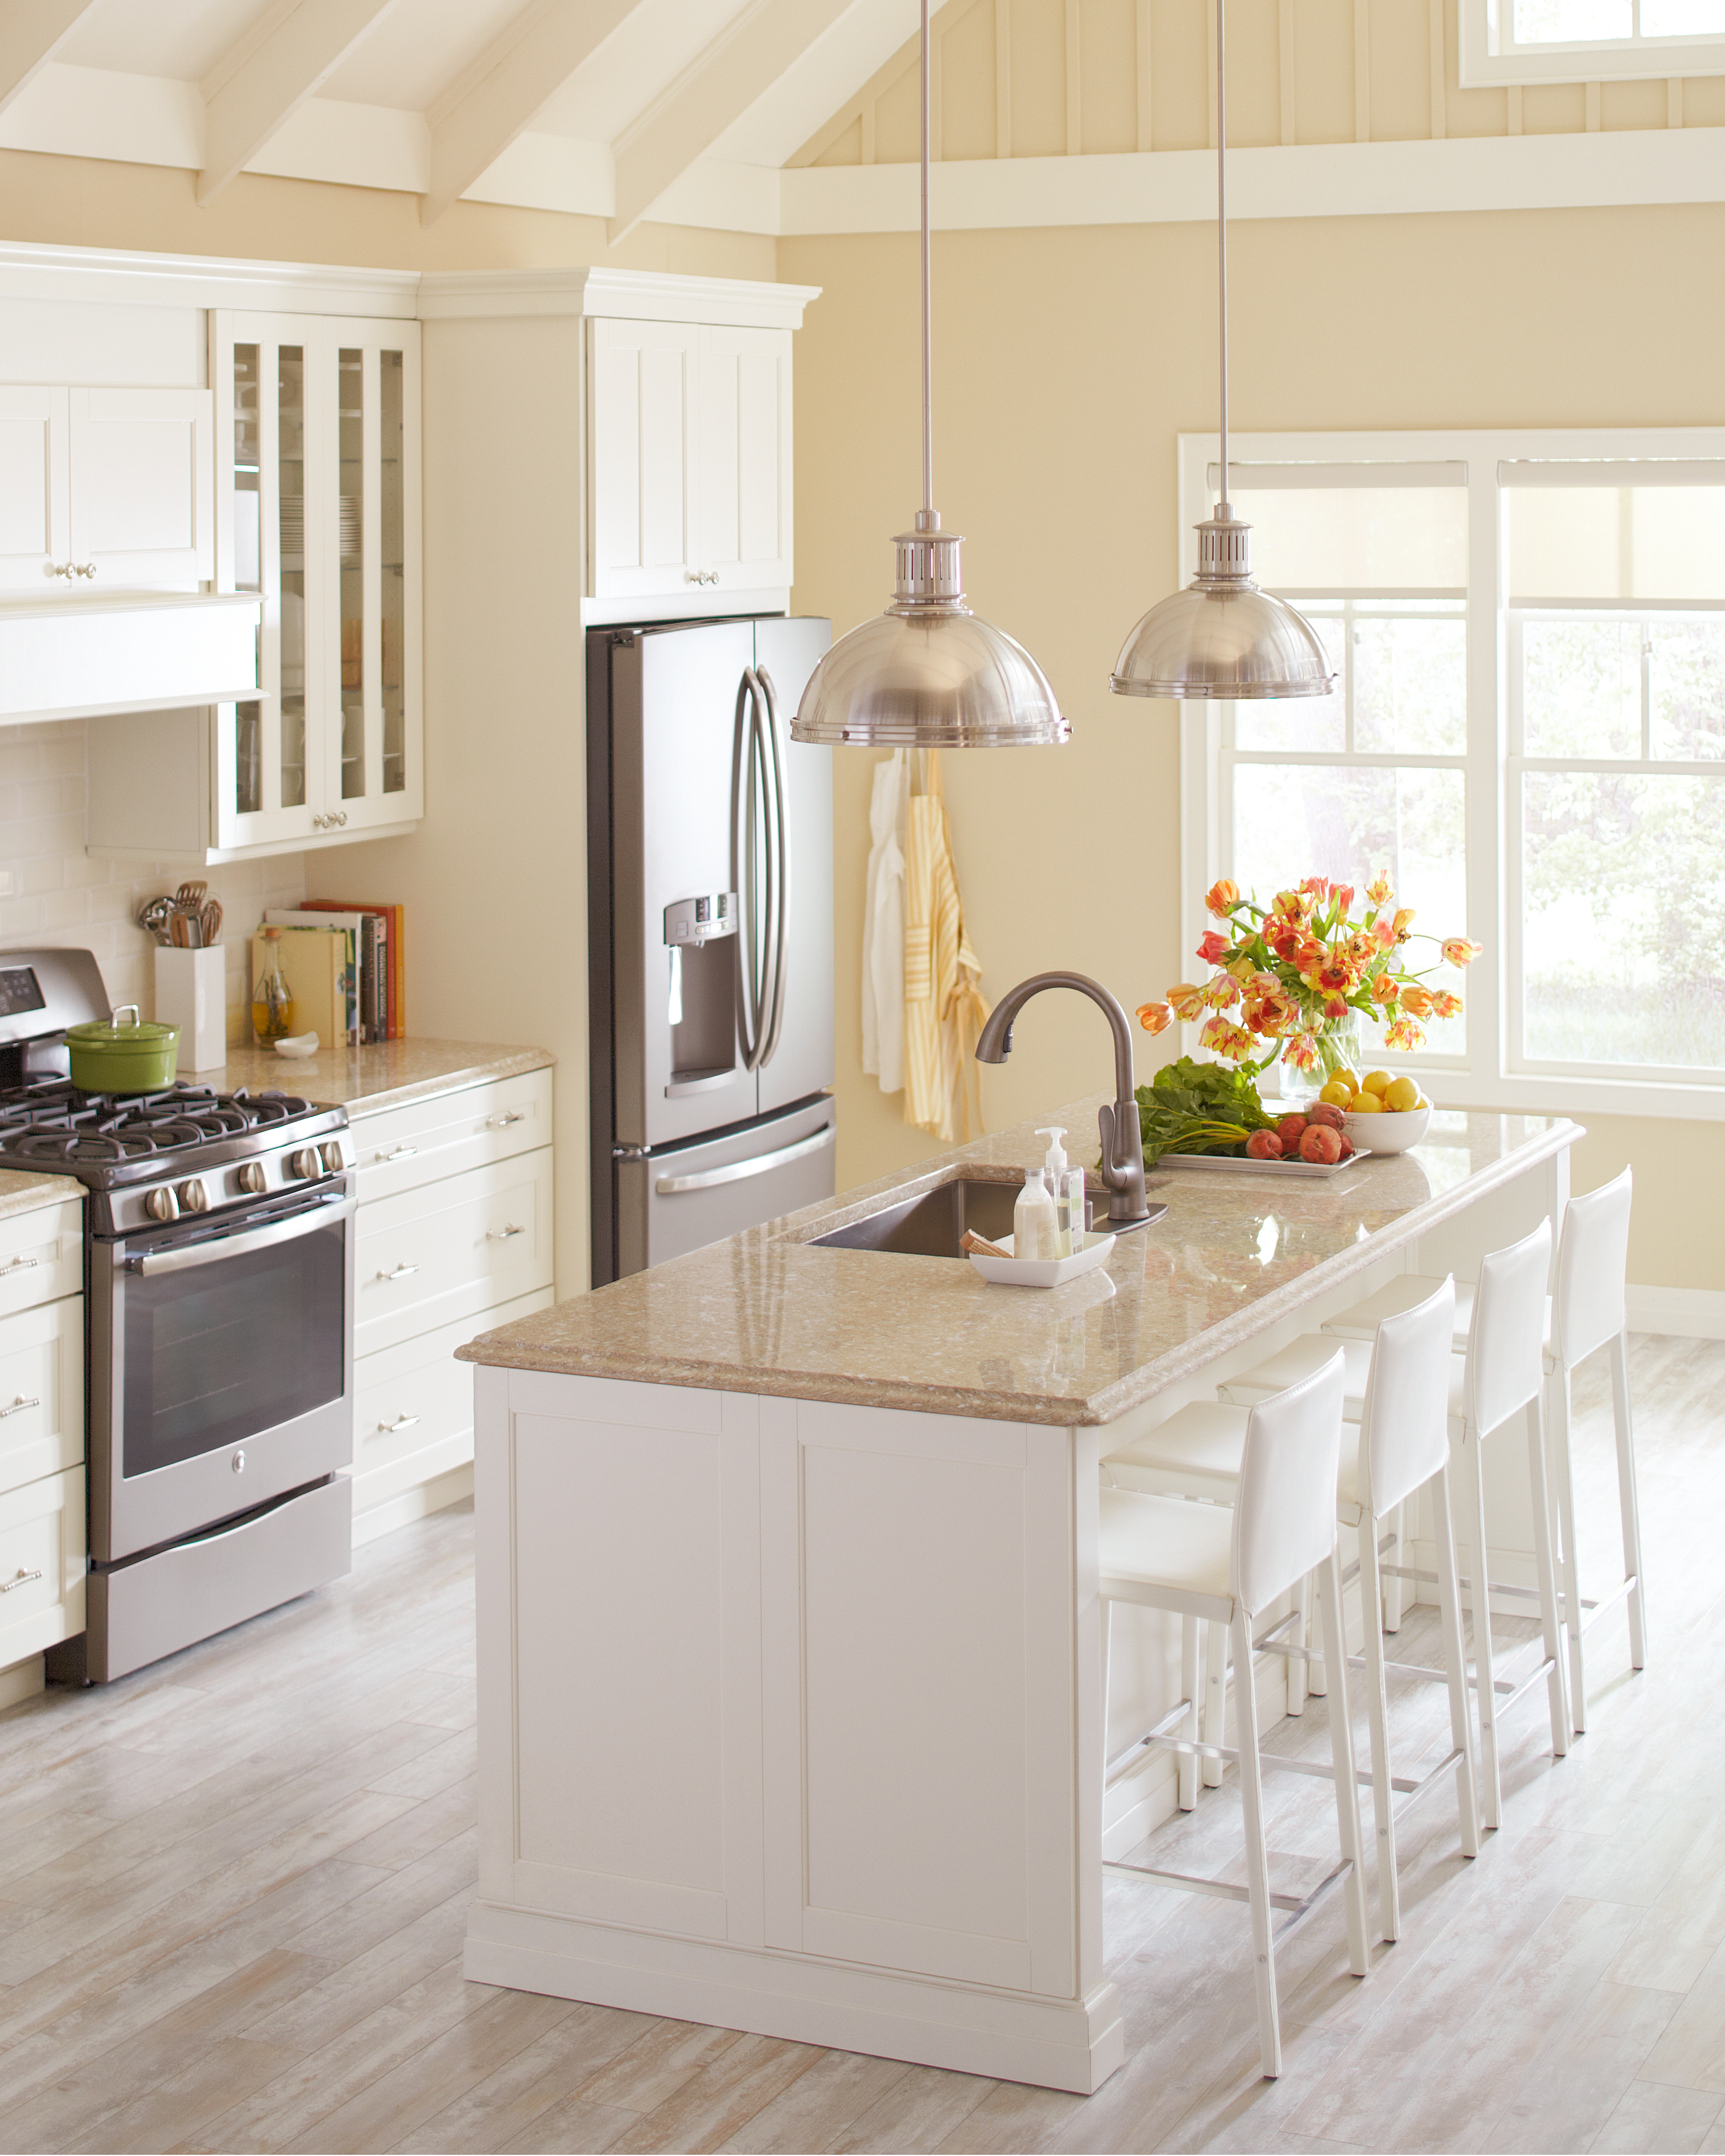 Home Depot: Quartz and Corian Countertops | Martha Stewart